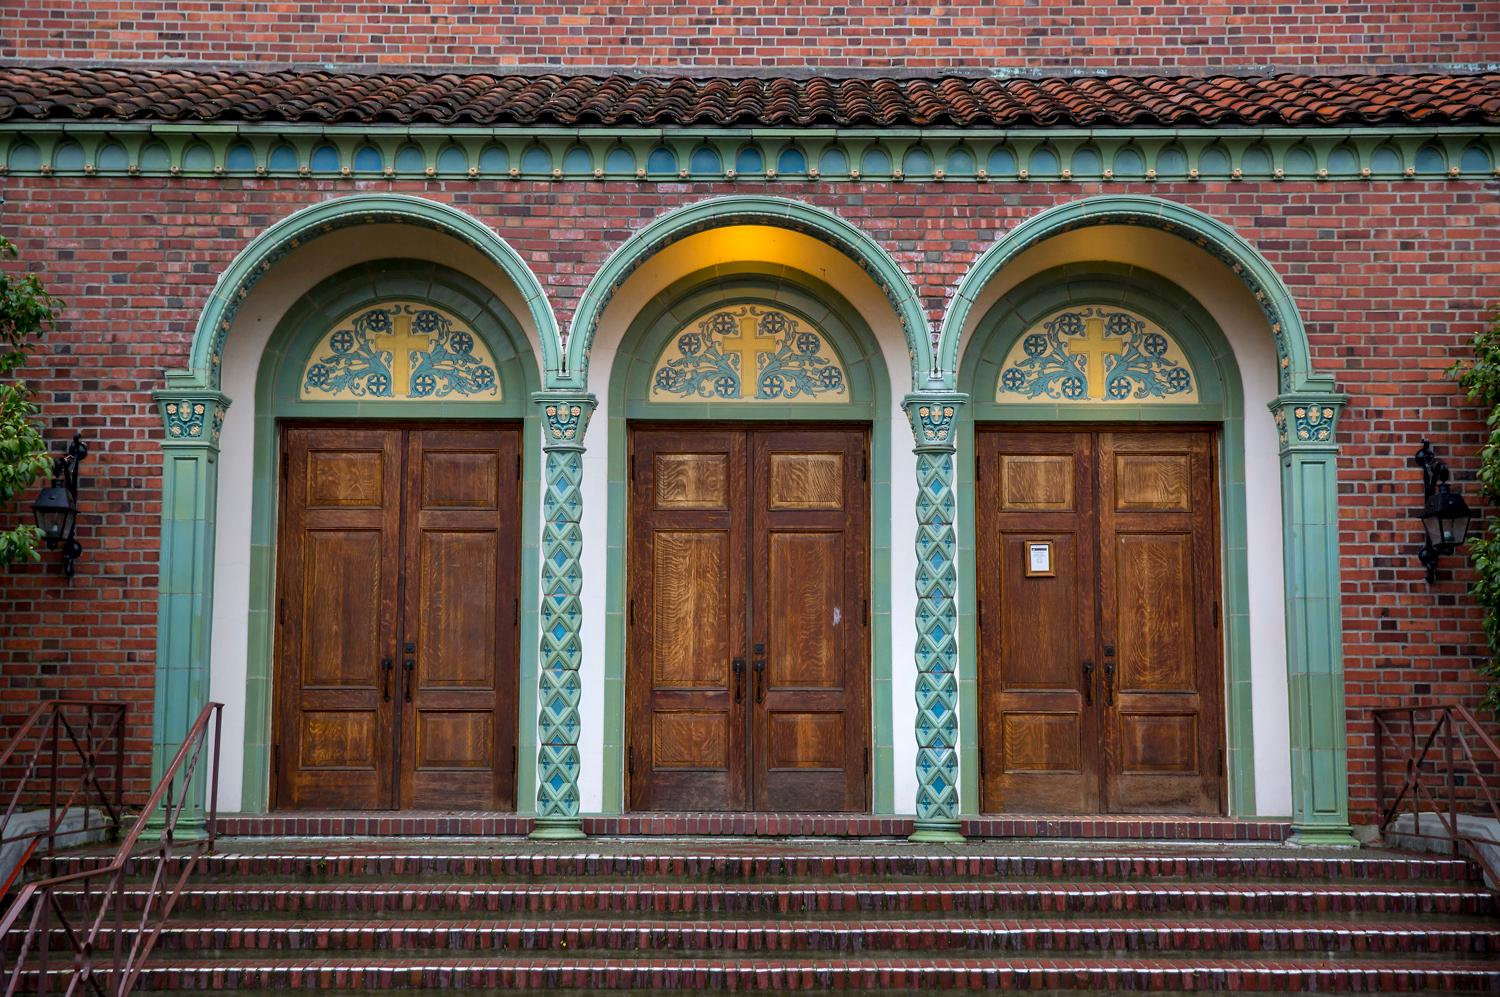 The Mt. Baker Presbyterian Church is one of the few examples of the Italian/Romanesque Revival-style architecture we have here in Seattle, and is part of the 2017 Mt. Baker Home Tour happening Dec. 2, 2017. (Image: Sy Bean / Seattle Refined)